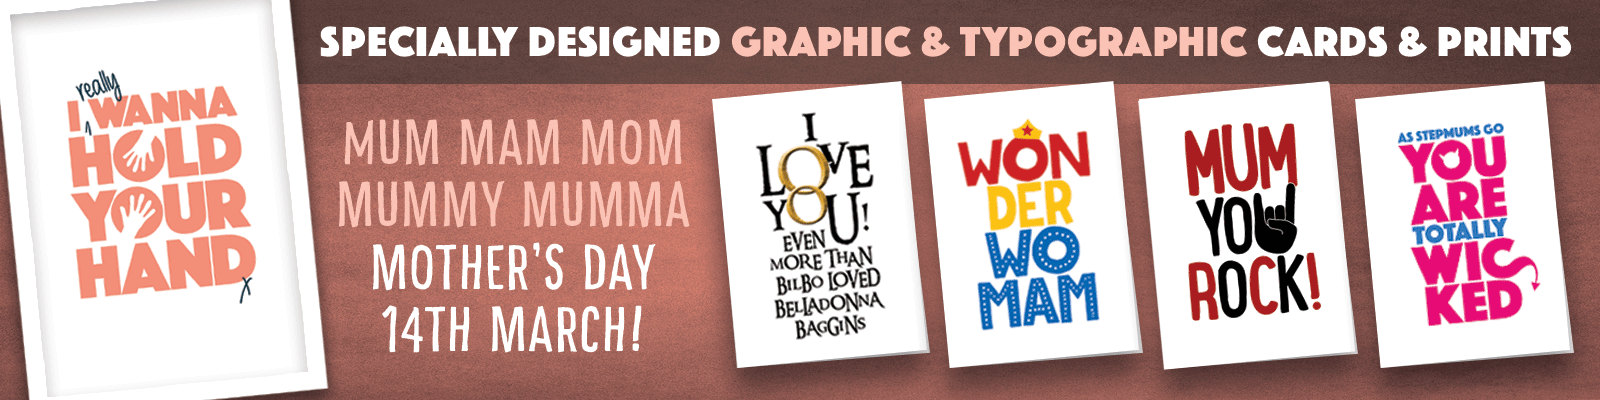 Mothers day cards header